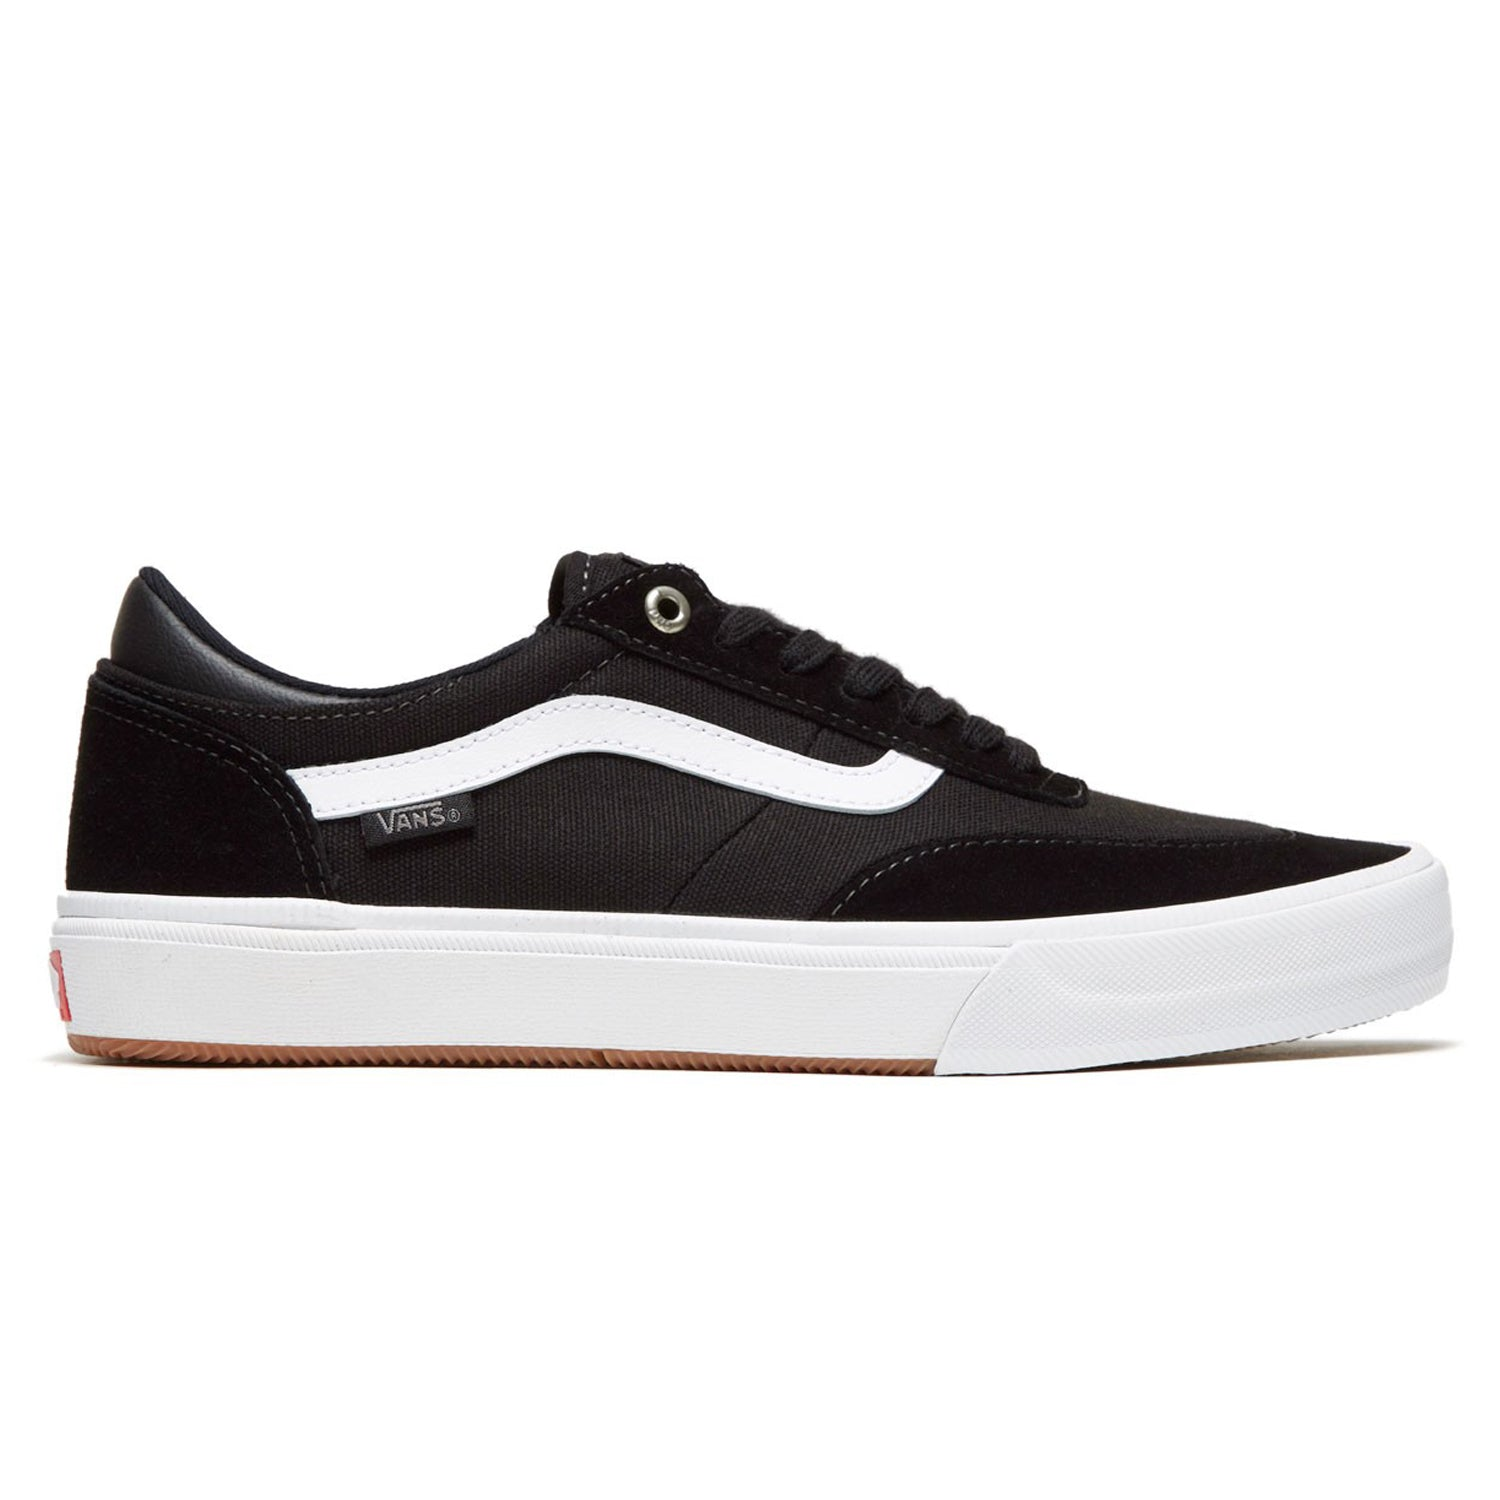 Vans Gilbert Crockett II Black/White